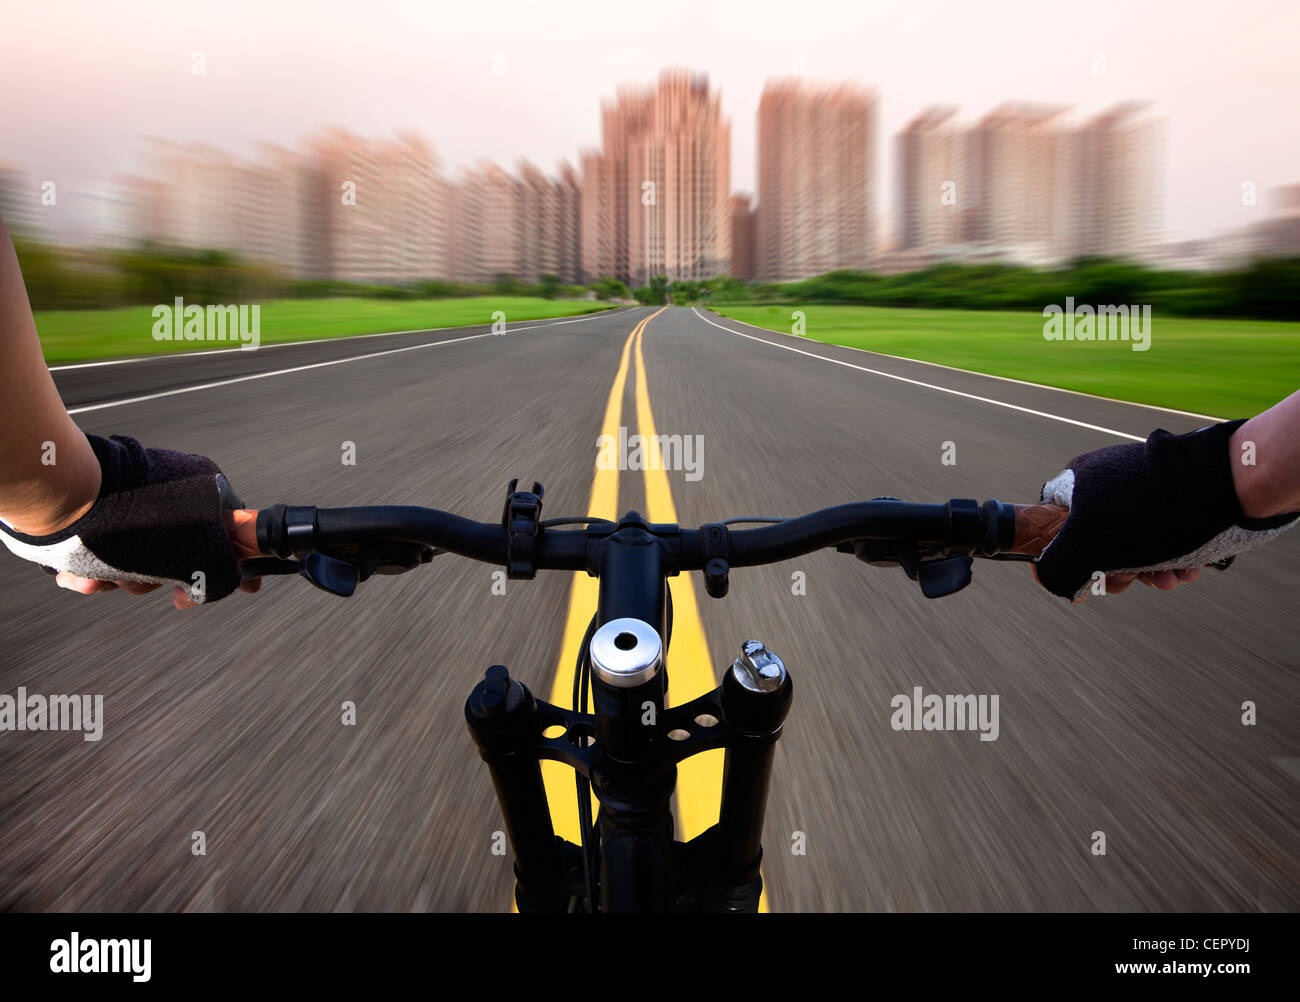 Bicycle rider high speed and riding to the city on the road - Stock Image